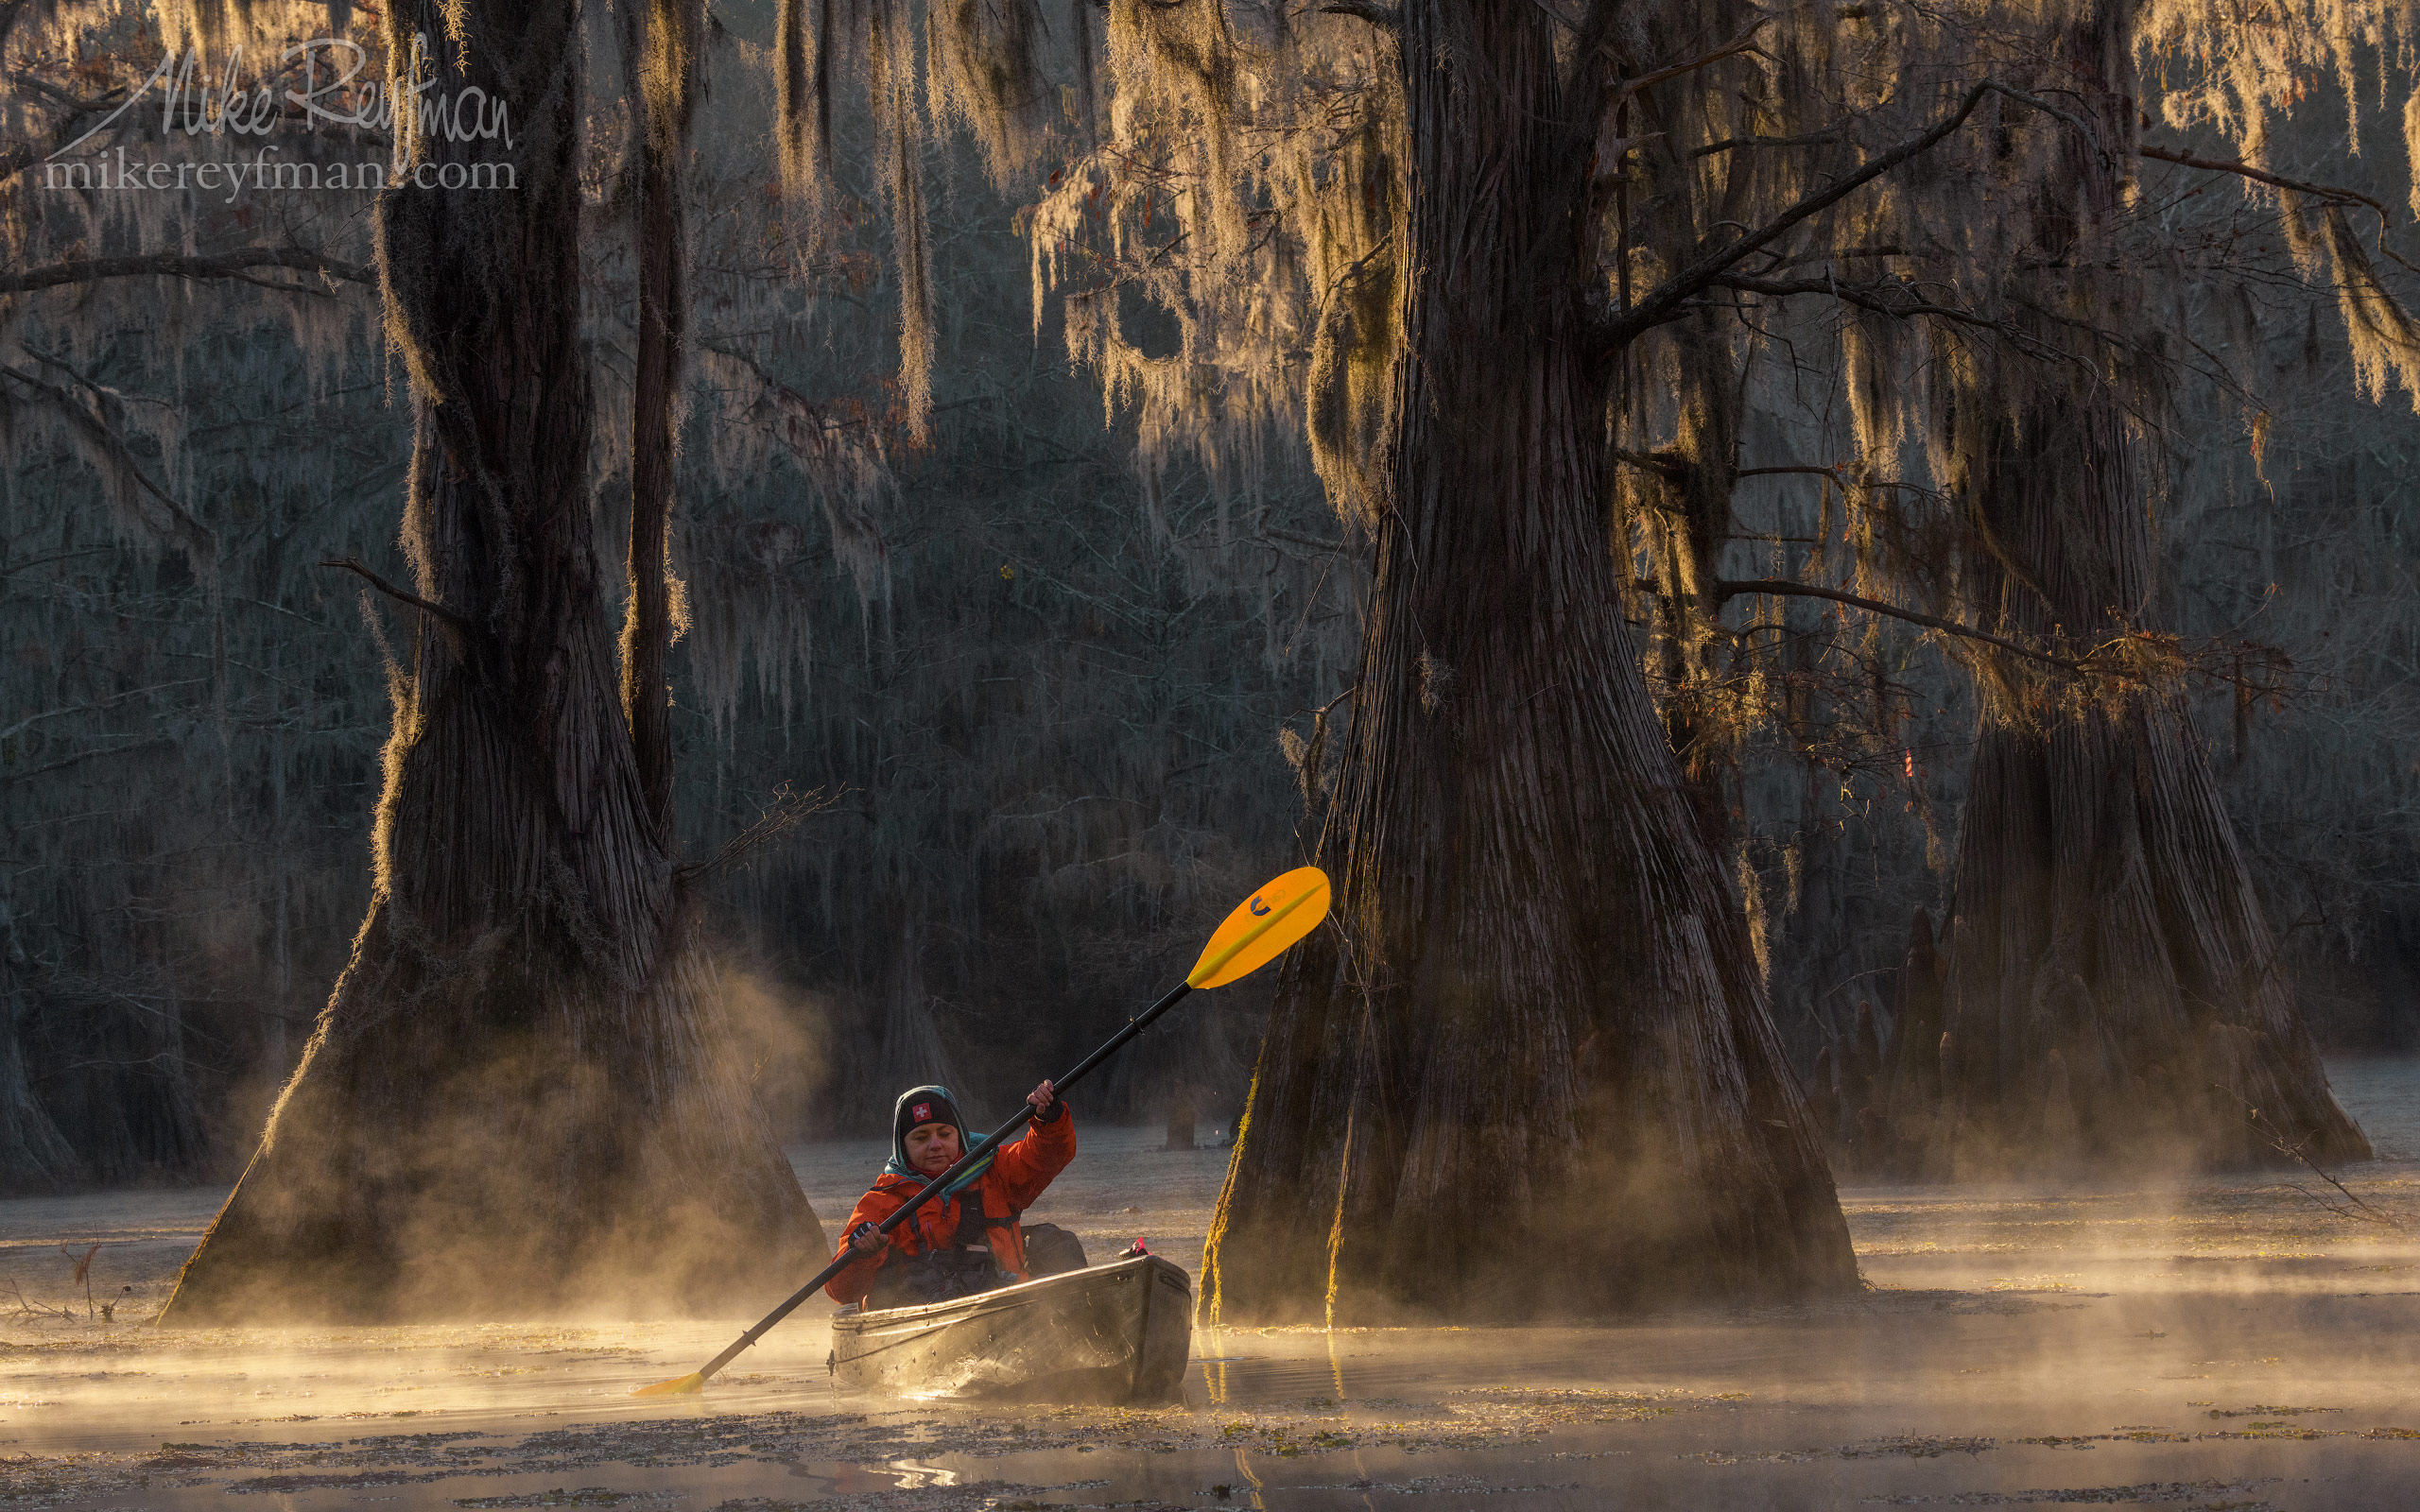 Kayaker paddling between Bald Cypress trees in the fog. Caddo Lake, Texas, US 046-LT1-50A3513.jpg - Bold Cypress and Tupelo Trees in the swamps of Atchafalaya River Basin. Caddo, Martin and Fousse Lakes. Texas/Louisiana, USA. - Mike Reyfman Photography